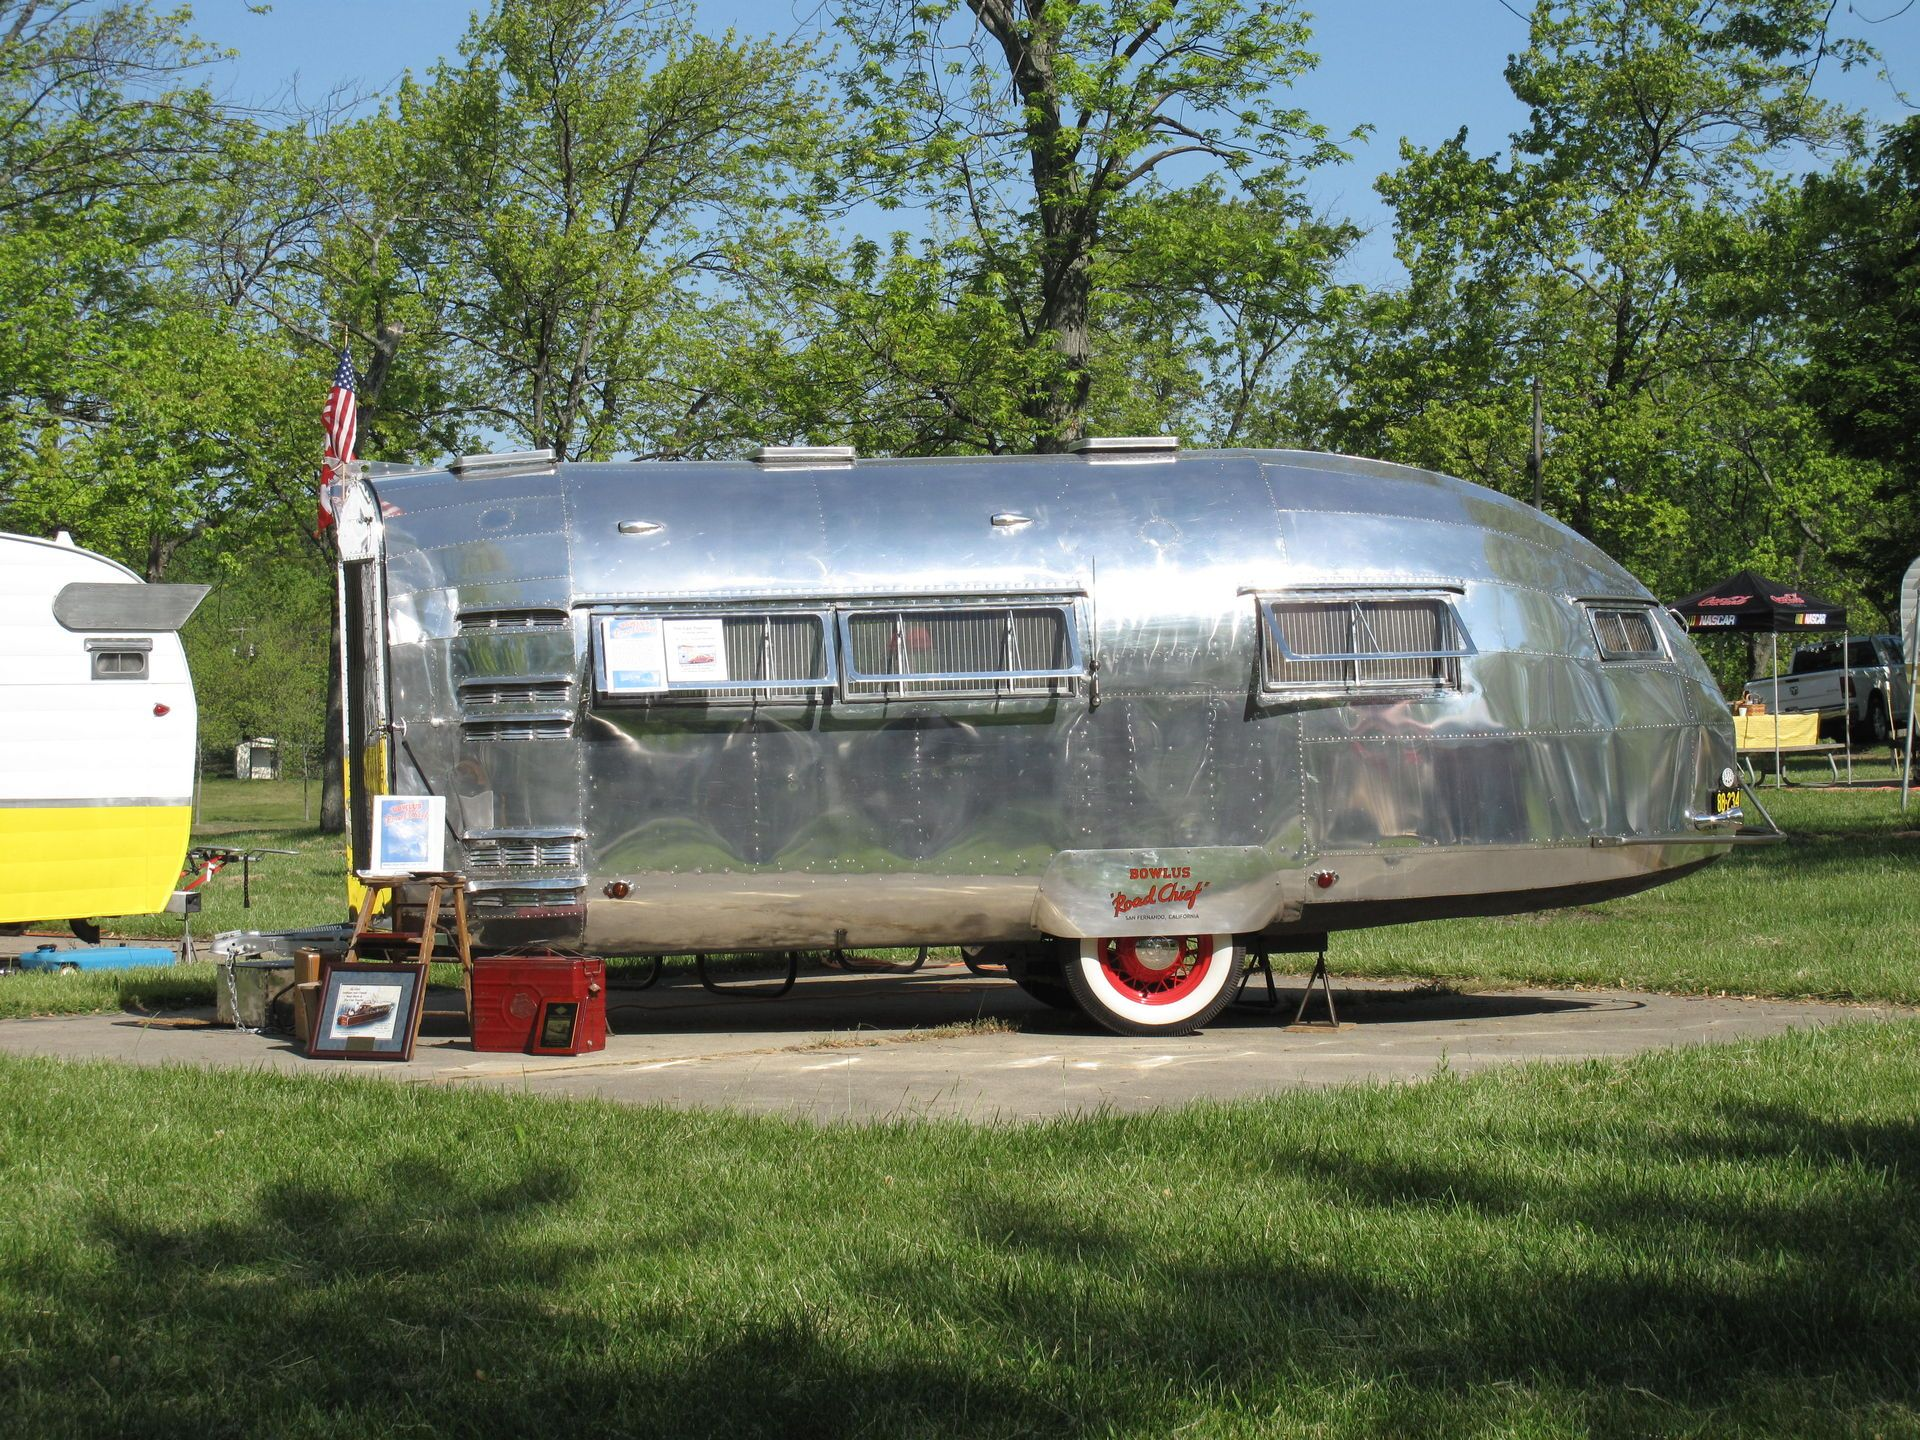 2012 15th Annual Gathering By Terry Bone Photo Sharing Zangzing Tin Can Tourist Vintage Trailers Vintage Rv